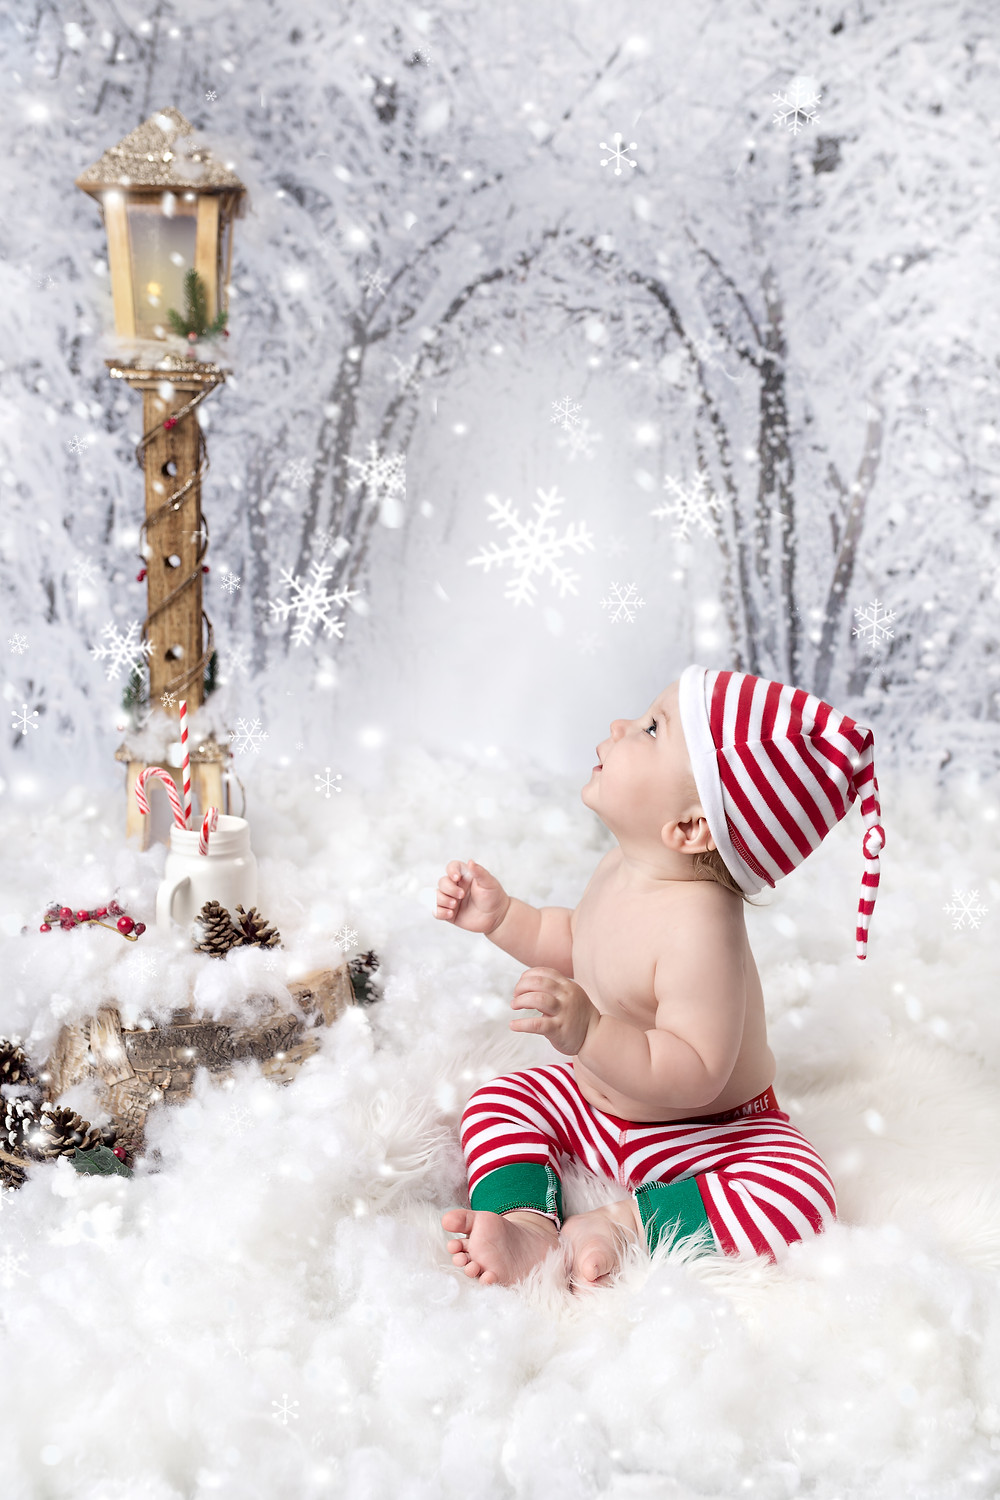 Baby Christmas mini session by Fairy Nuff Photography, Nottingham